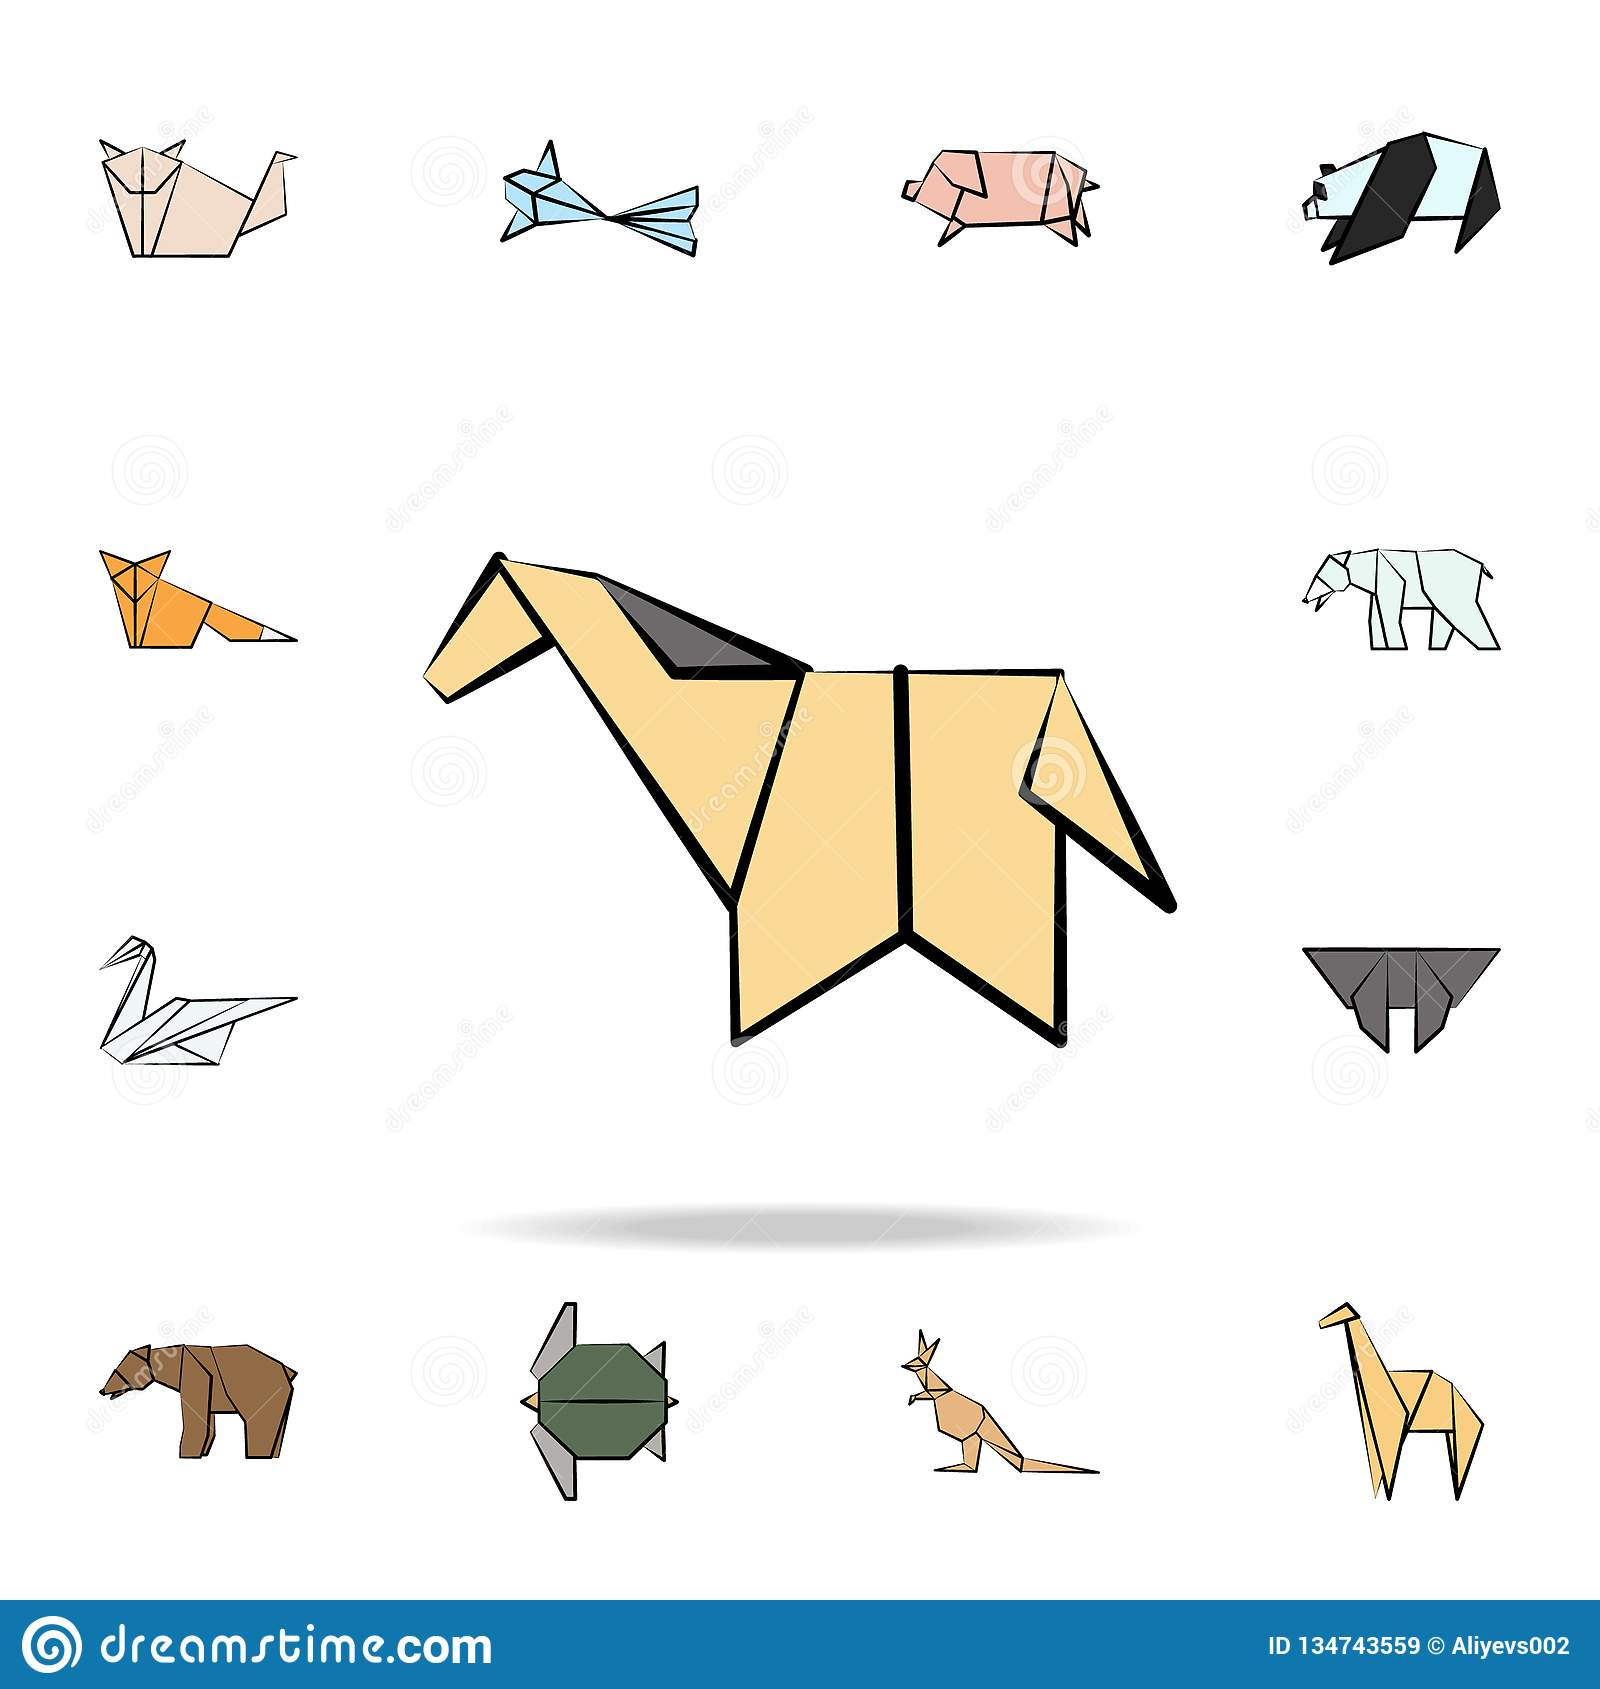 horse colored origami icon. Detailed set of origami animal in hand drawn style icons. Premium graphic design. One of the